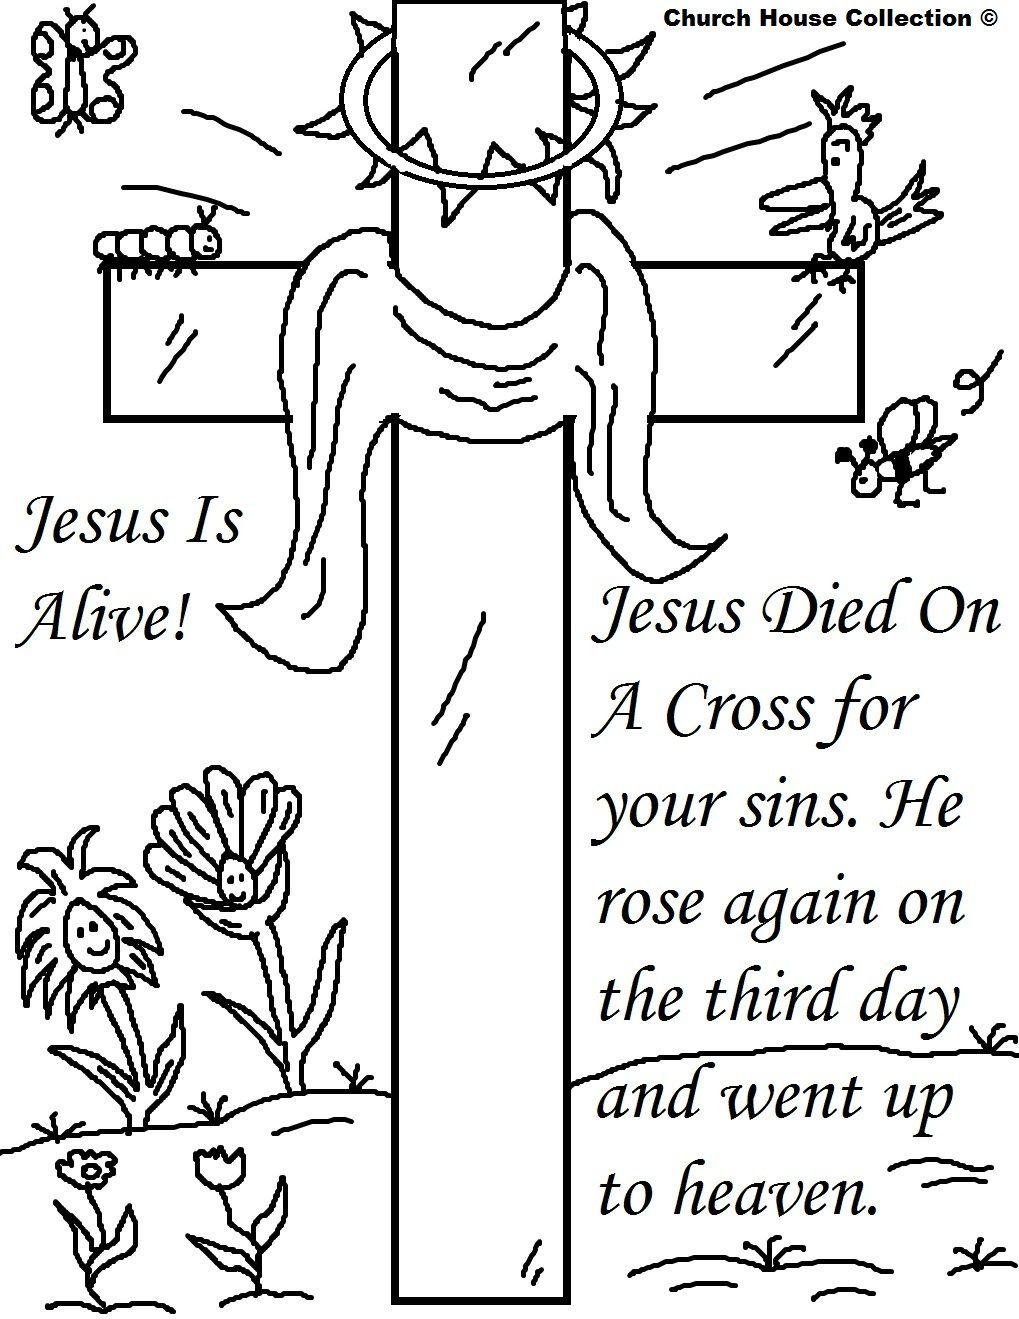 Printable coloring pages religious items - Printable Coloring Pages Religious Items 1